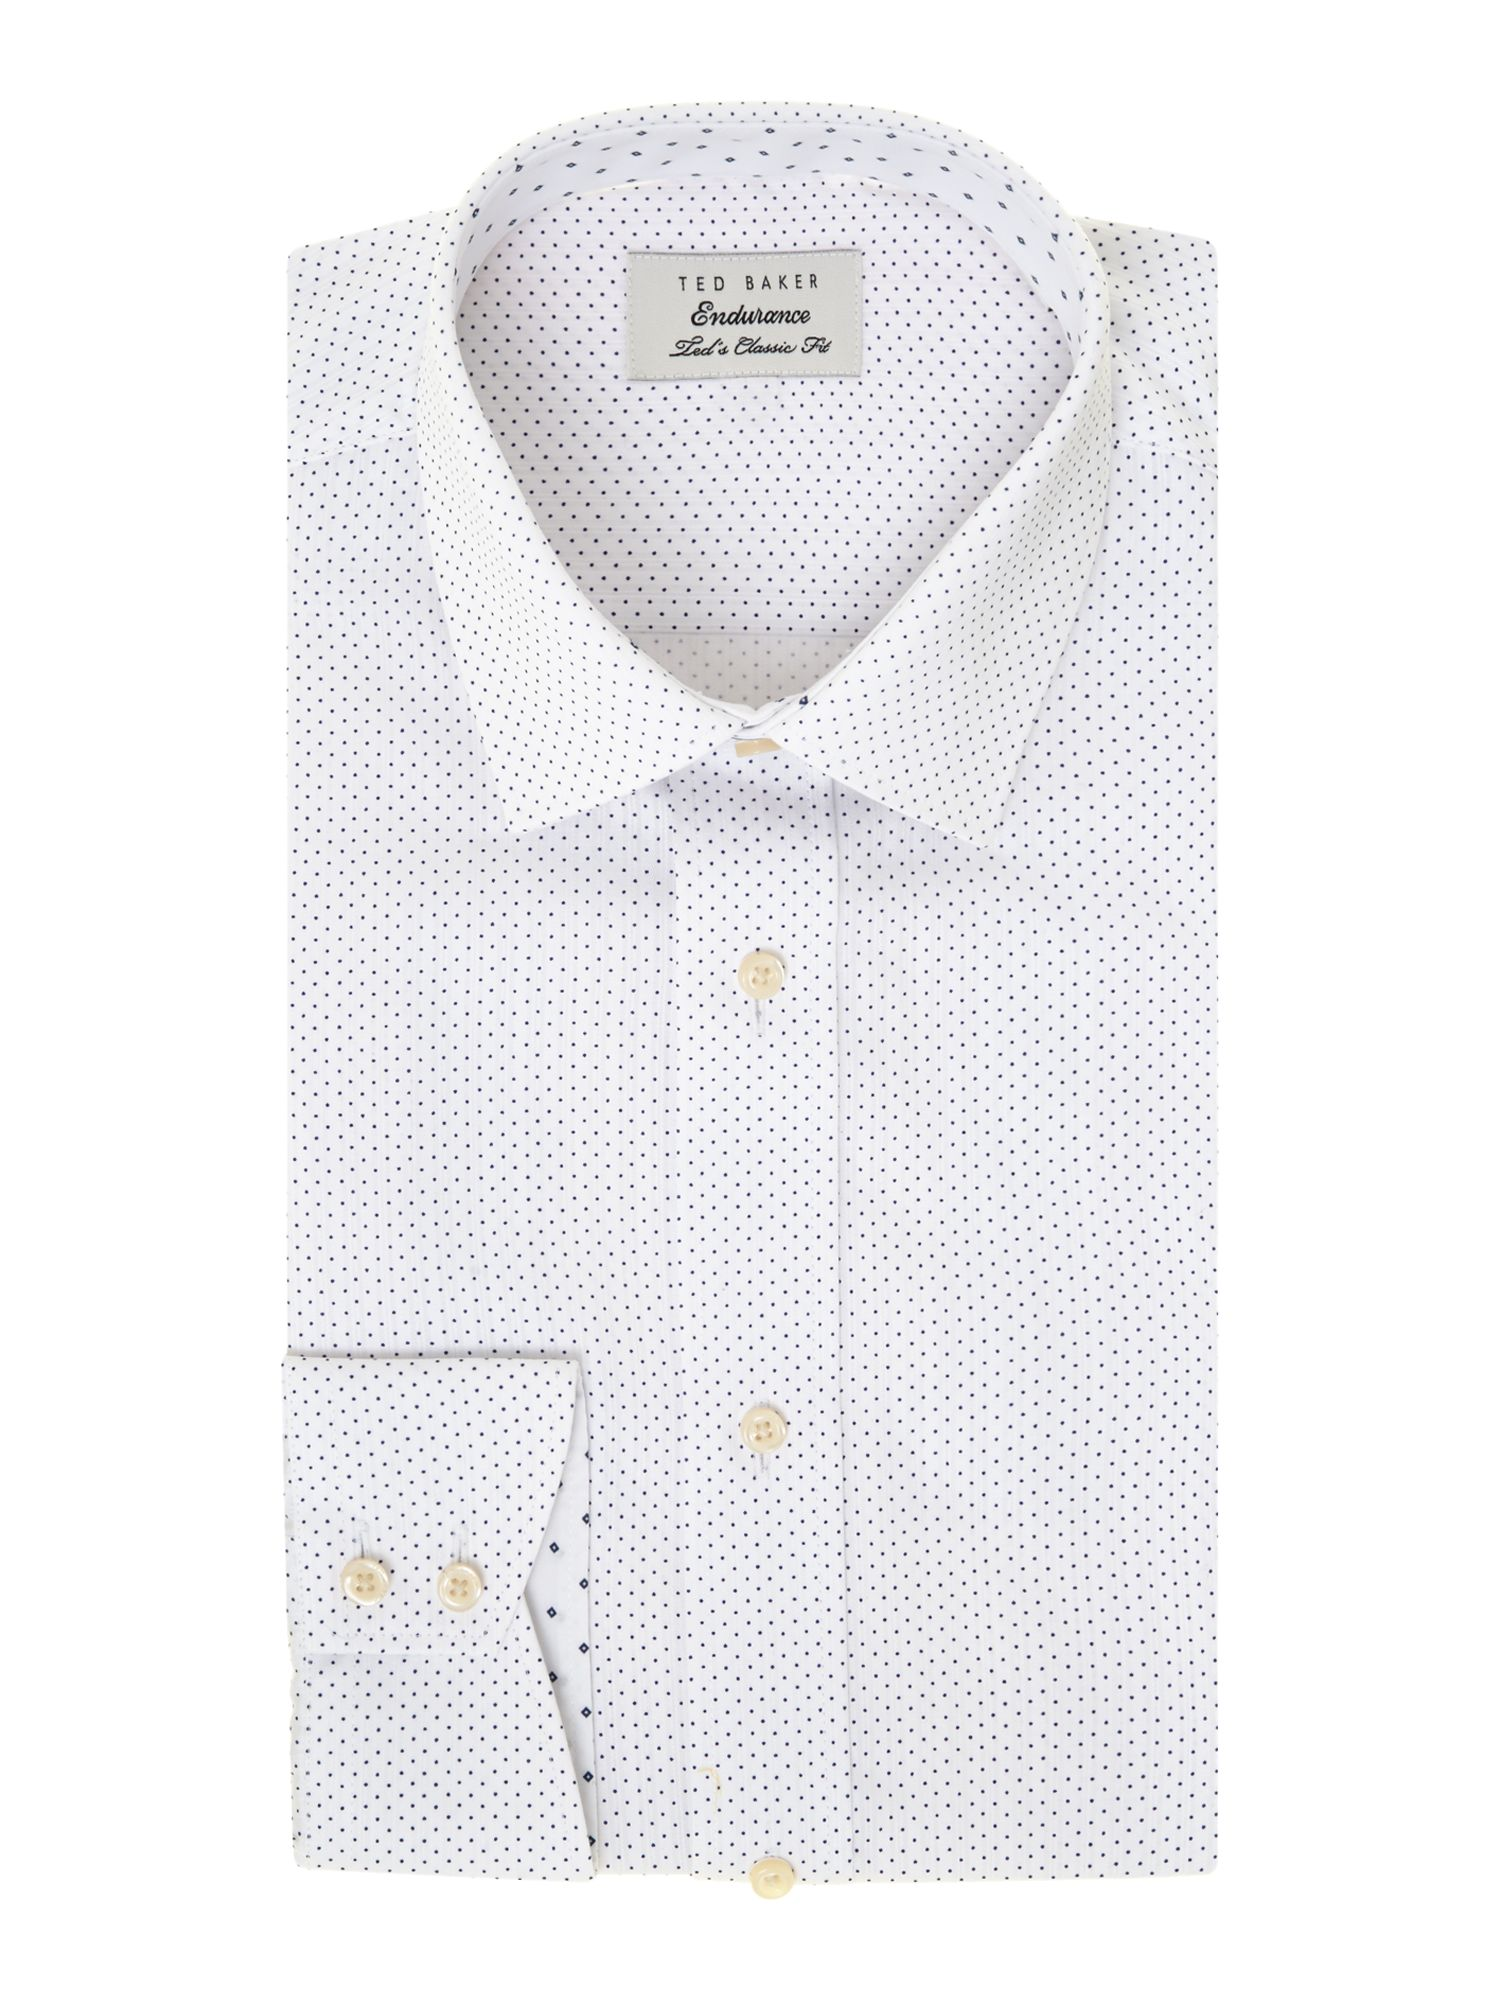 Nunton regular fit stripe and dot shirt